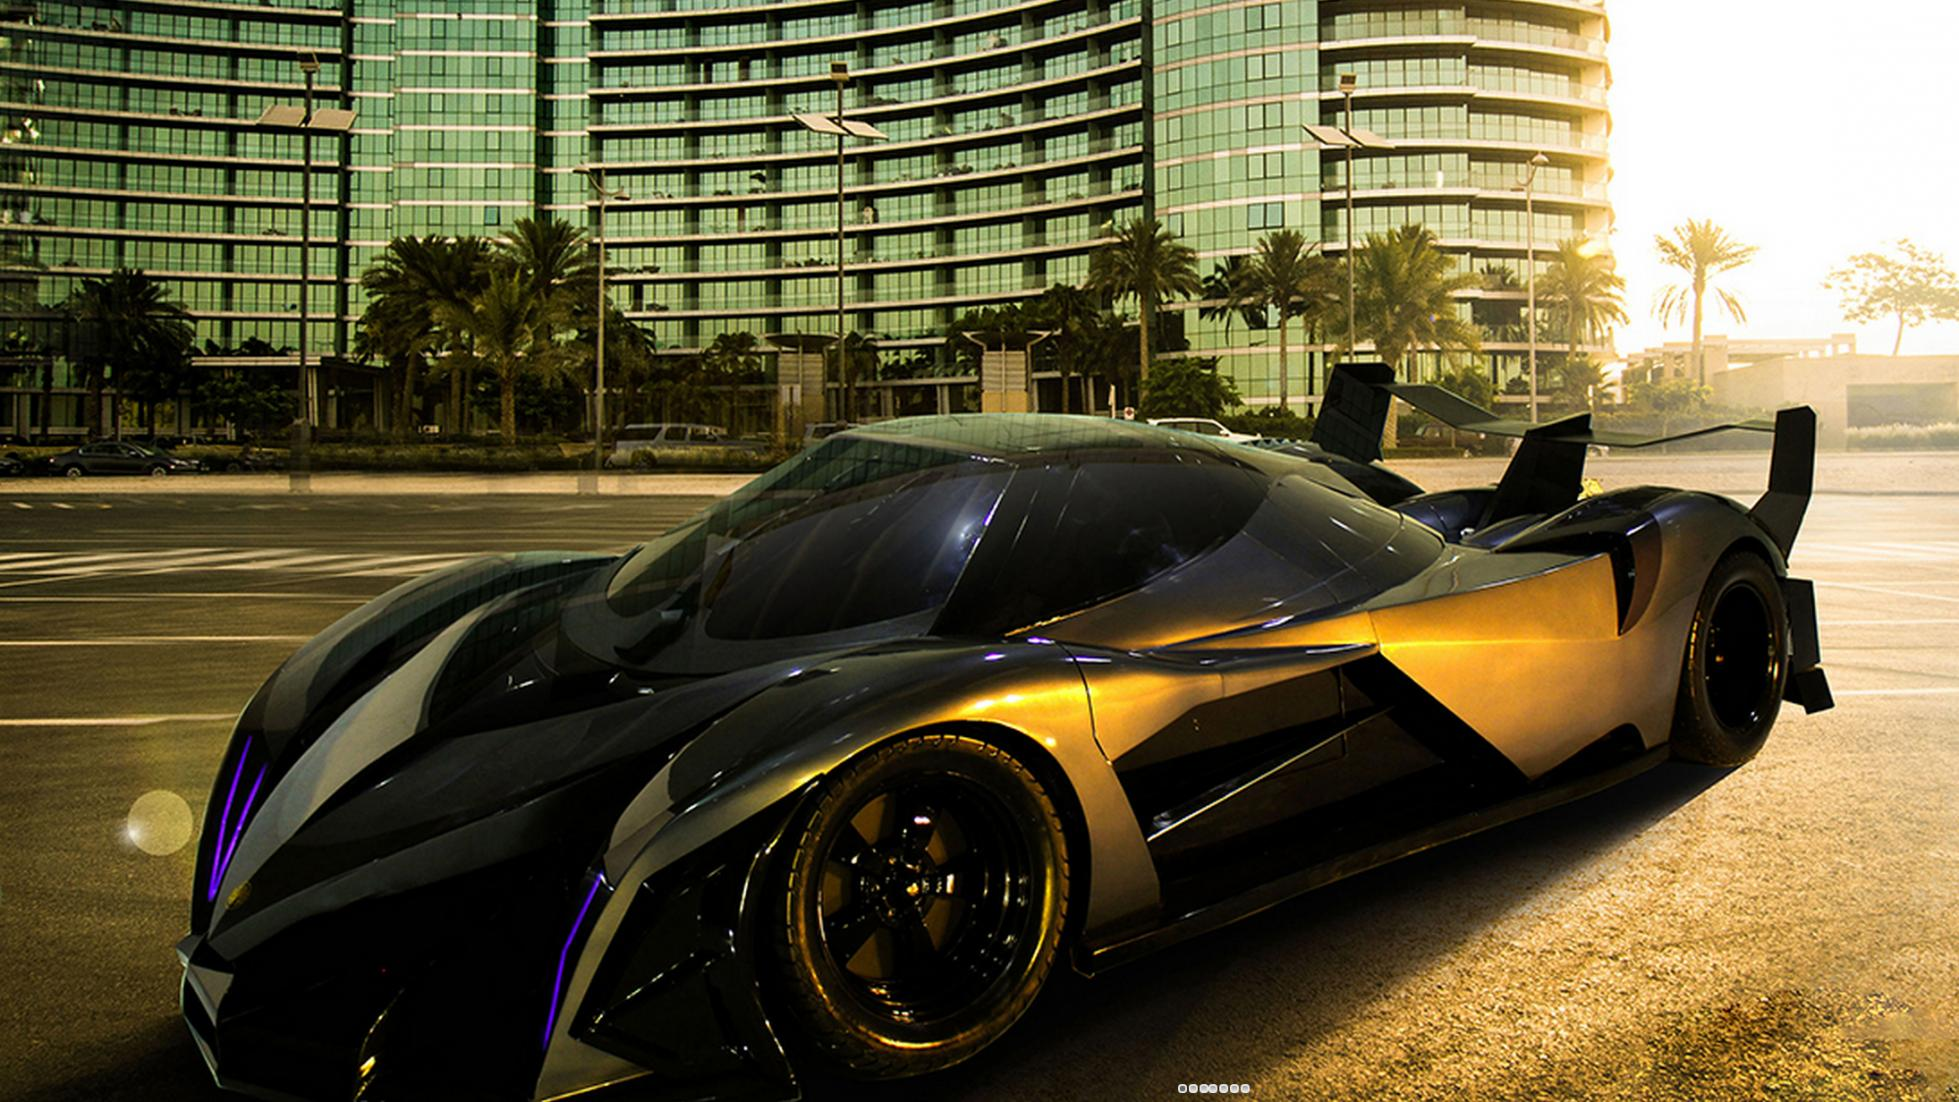 Photo of Upoznajte Devel Sixteen s V16 quad turbo mašinom od 5000 konja!